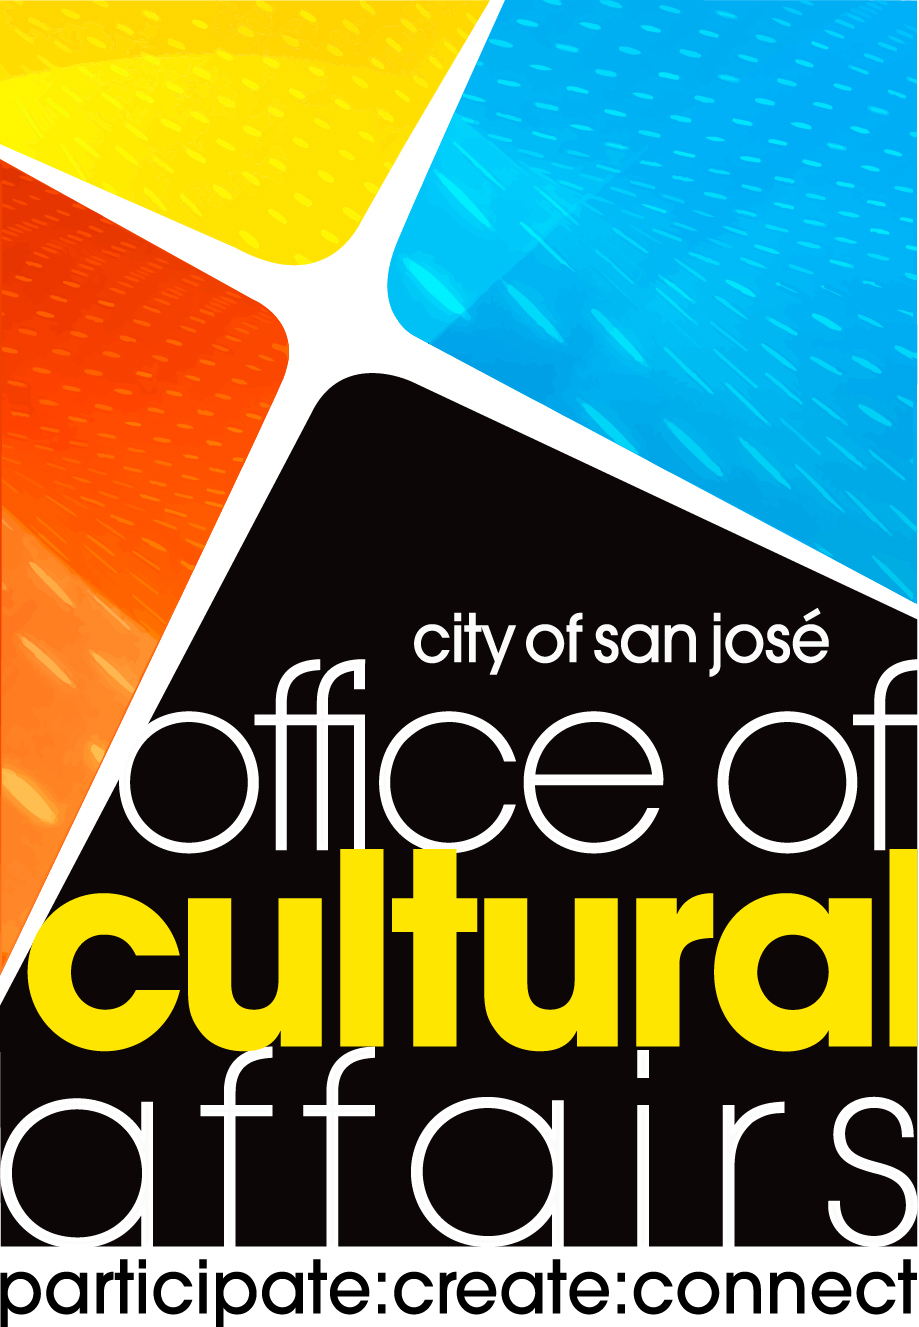 City of San José Office of Cultural Affairs